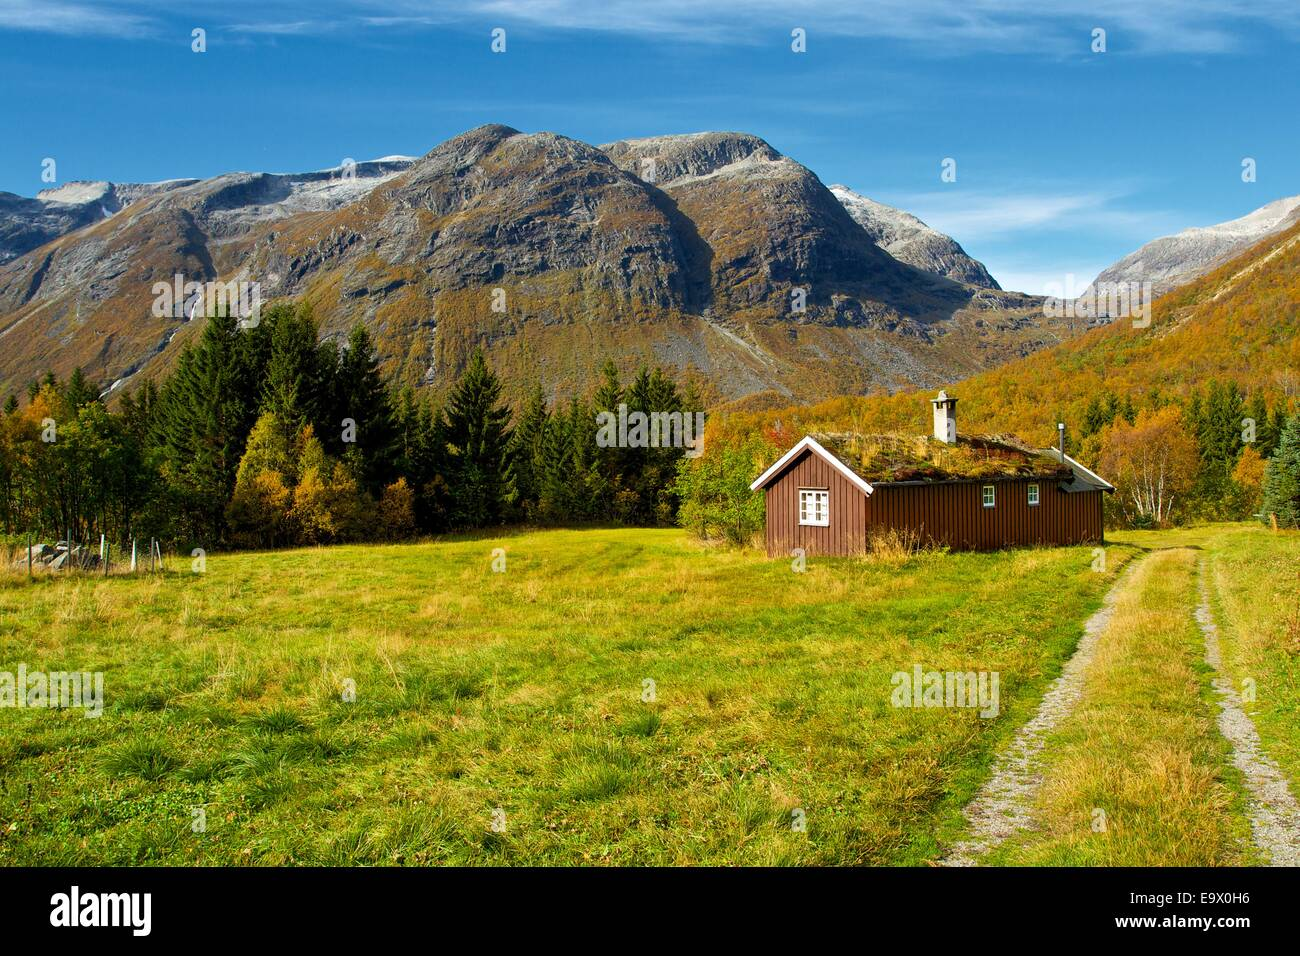 wood hut mountain norway stockfotos wood hut mountain norway bilder alamy. Black Bedroom Furniture Sets. Home Design Ideas